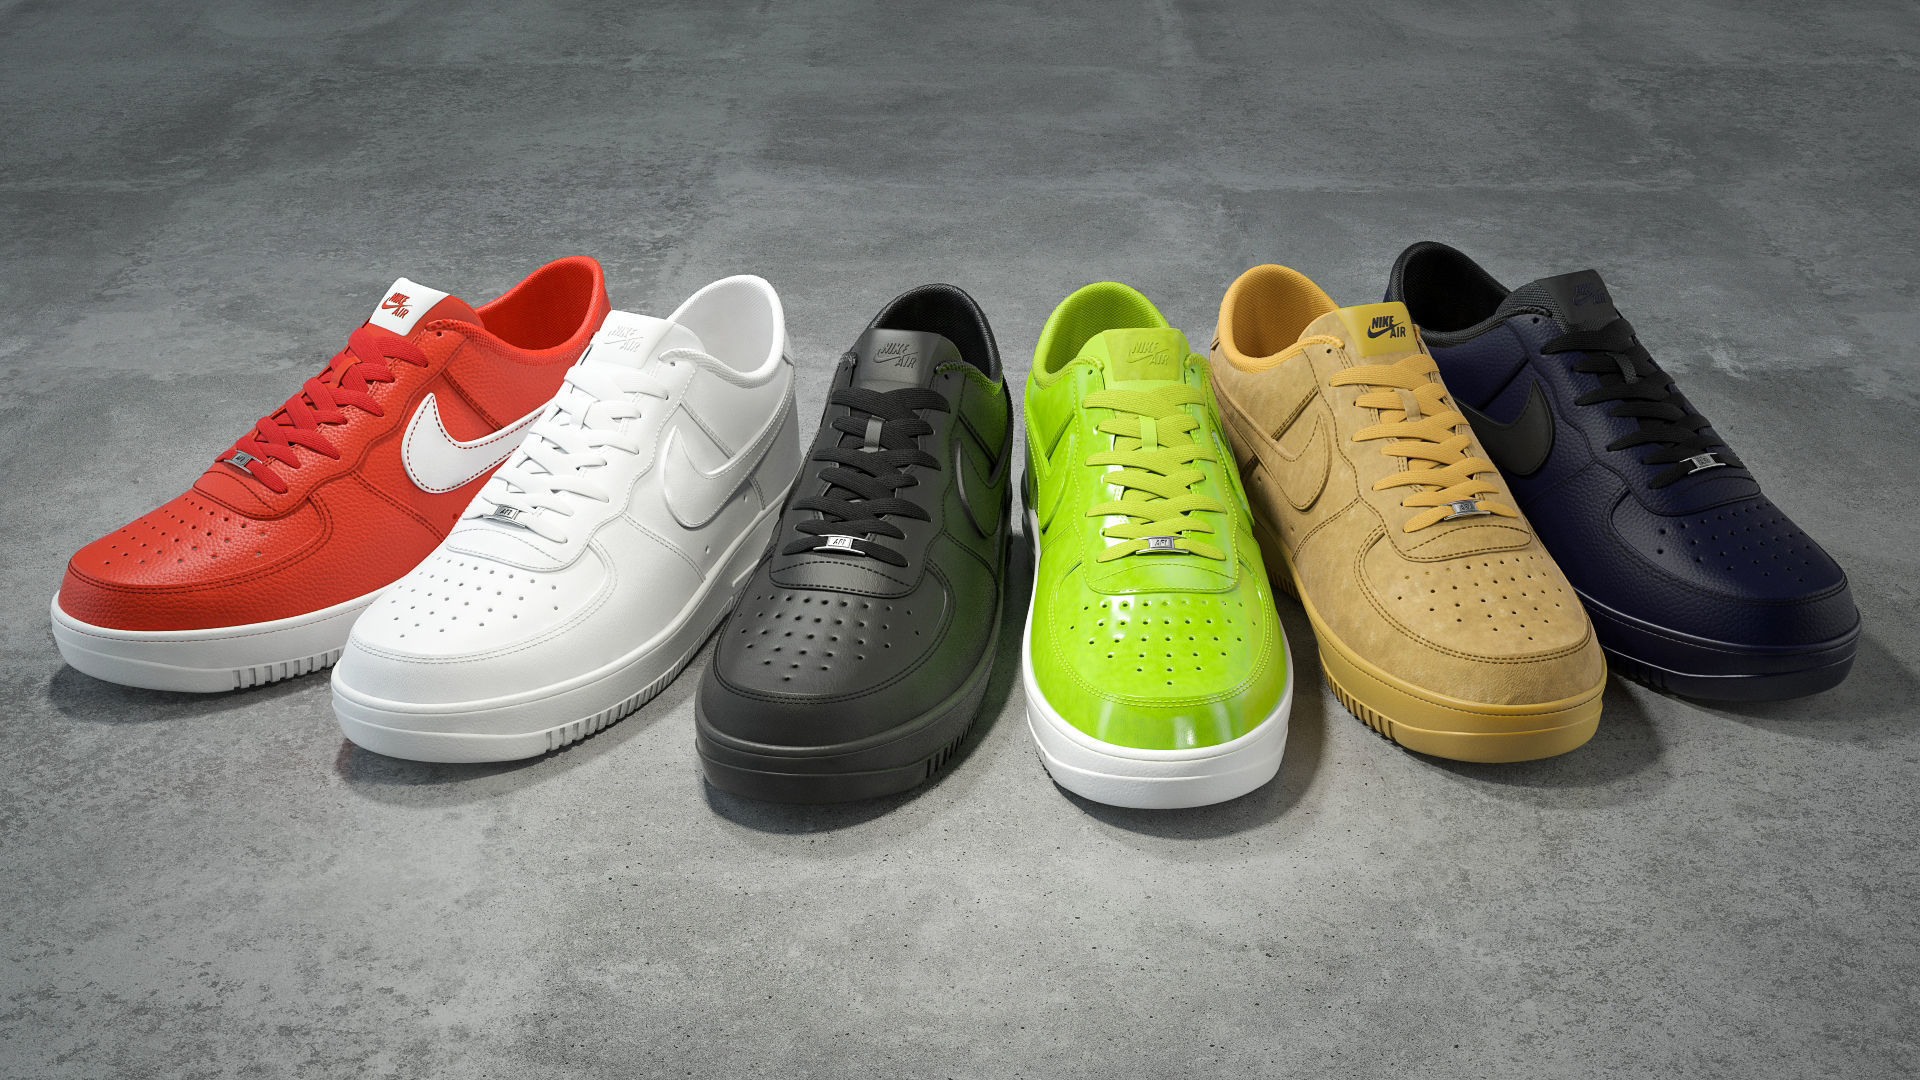 Nike Air Force 1 low collection